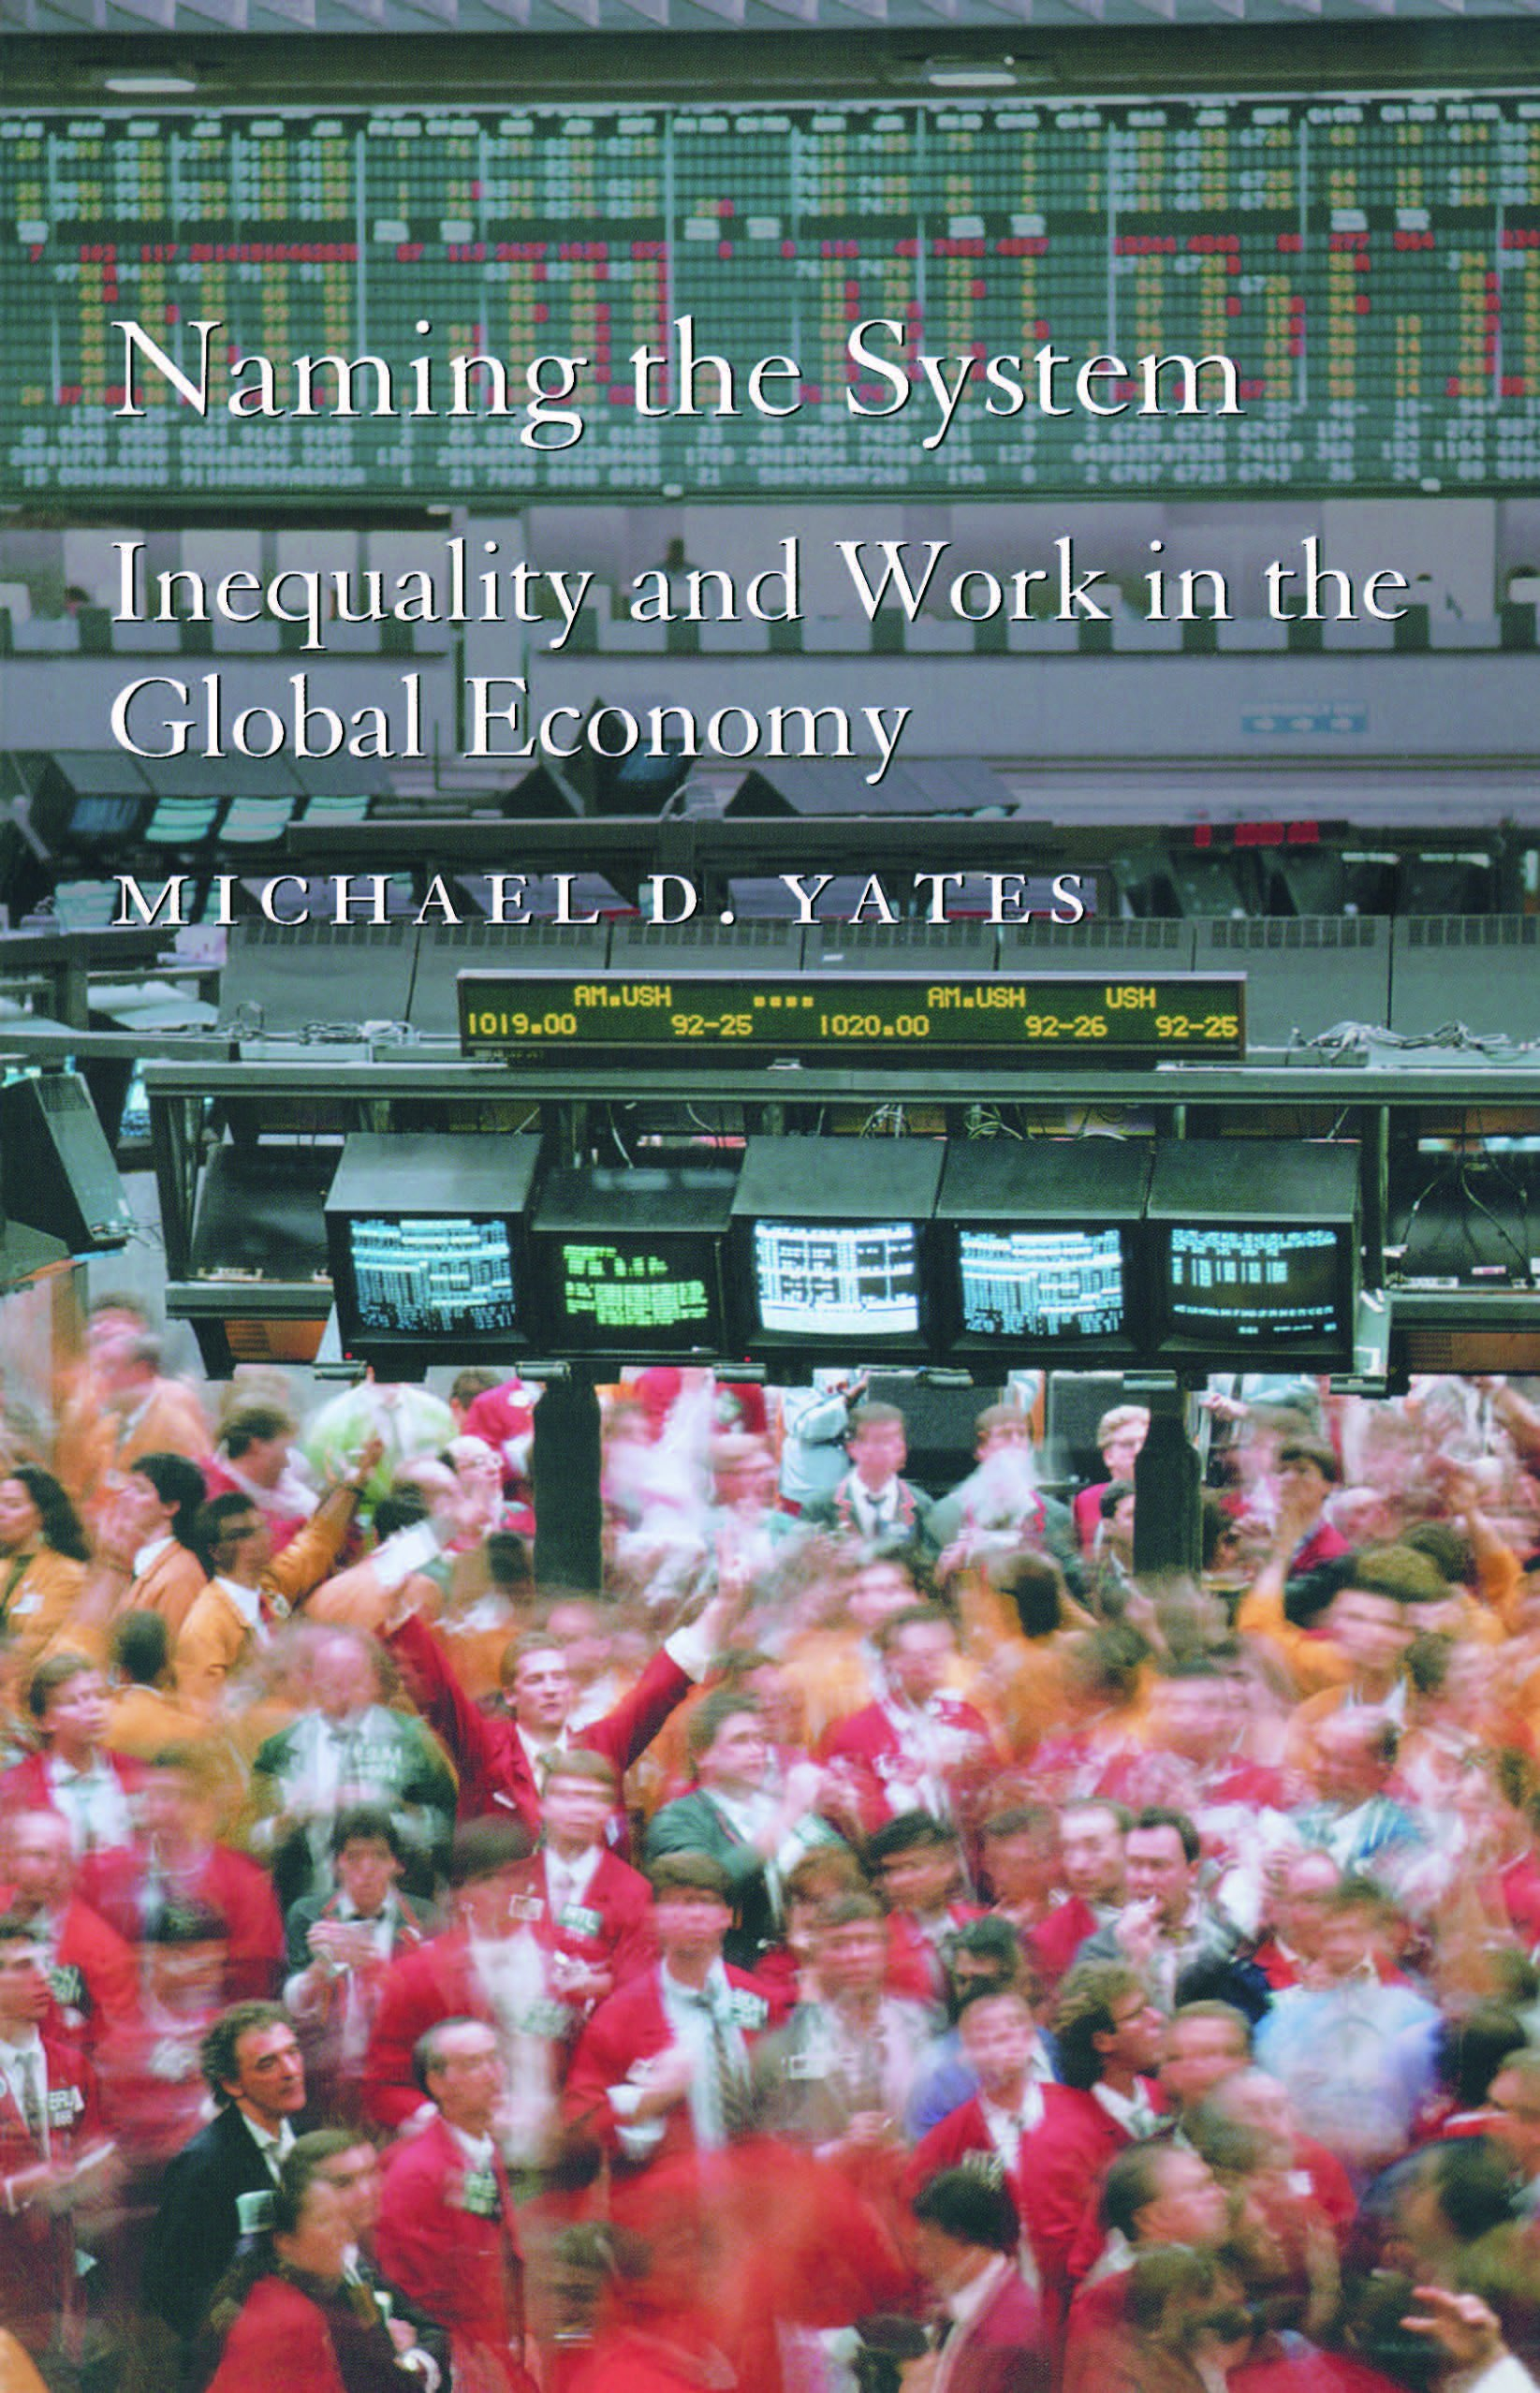 Naming the System: Inequality and Work in the Global Economy